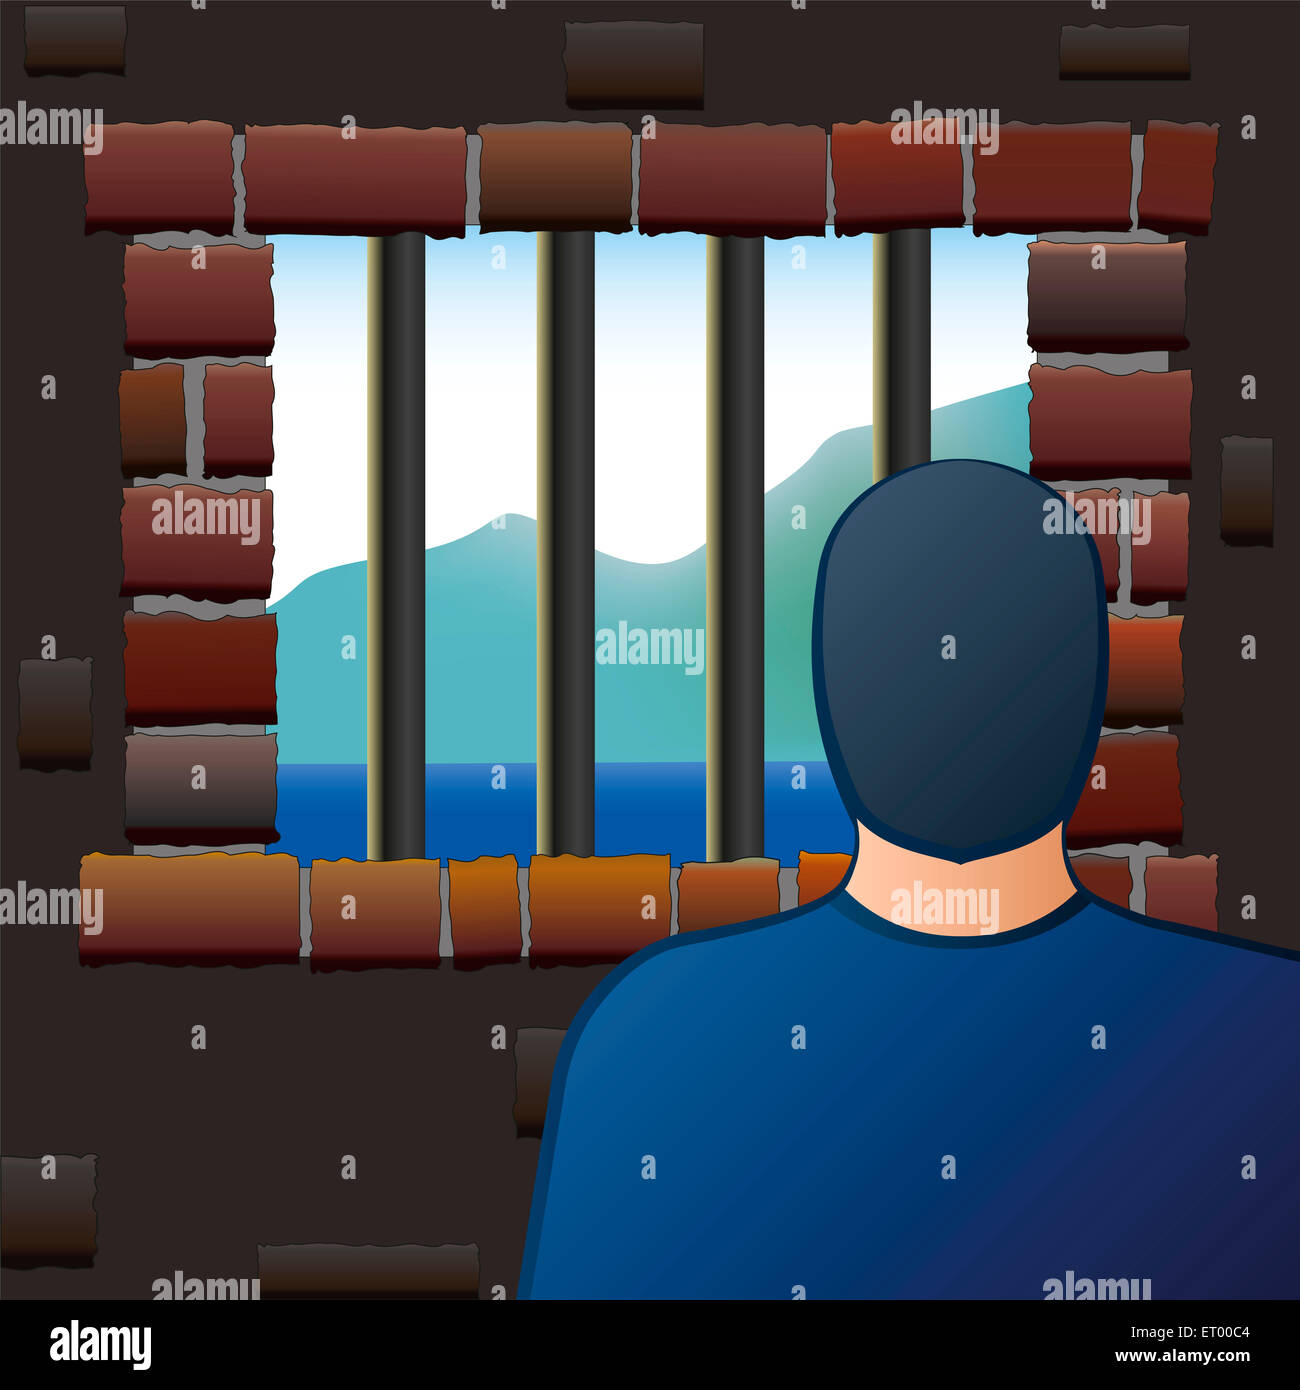 An arrested man is looking out of the barred window of a jail. - Stock Image